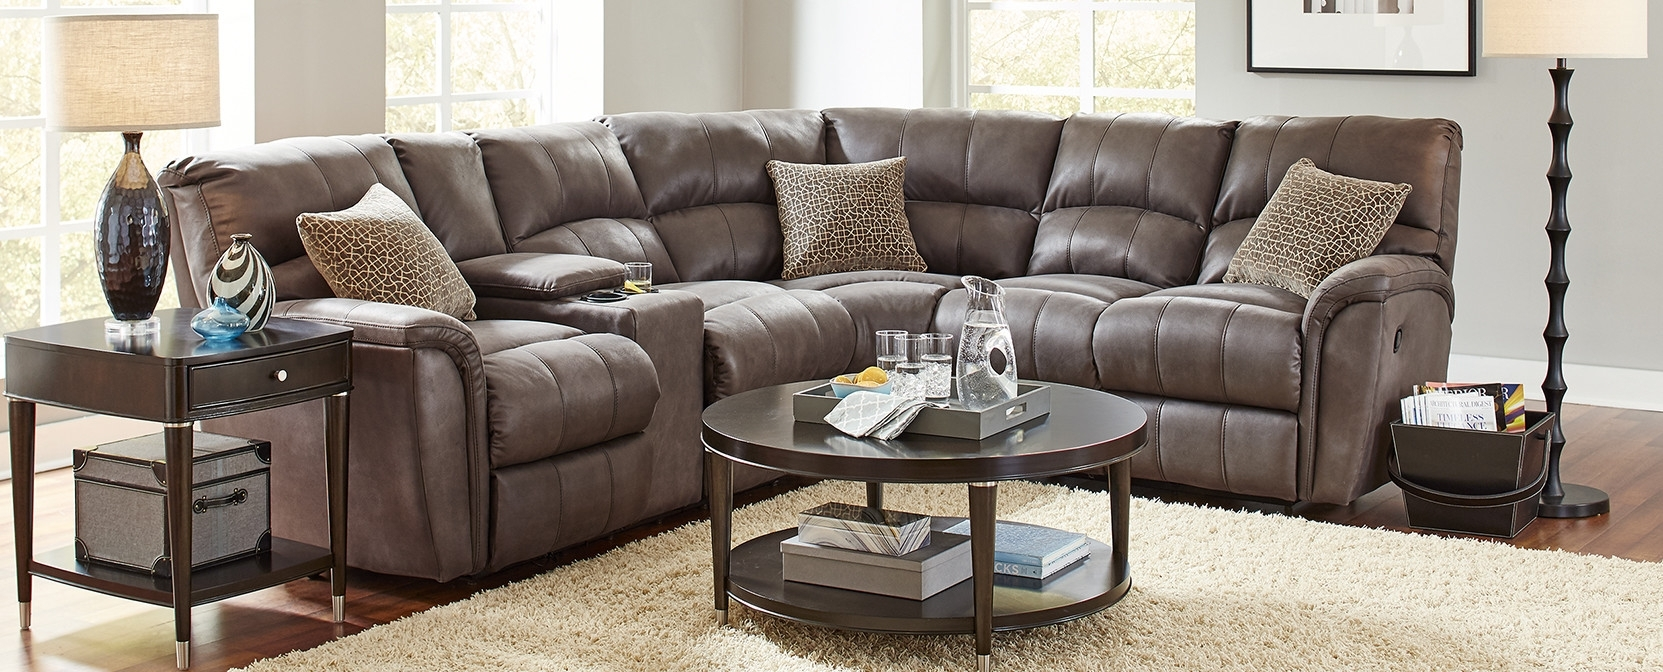 Furniture Sectional Sofa With Regard To Visalia Ca Sectional Sofas (View 2 of 10)